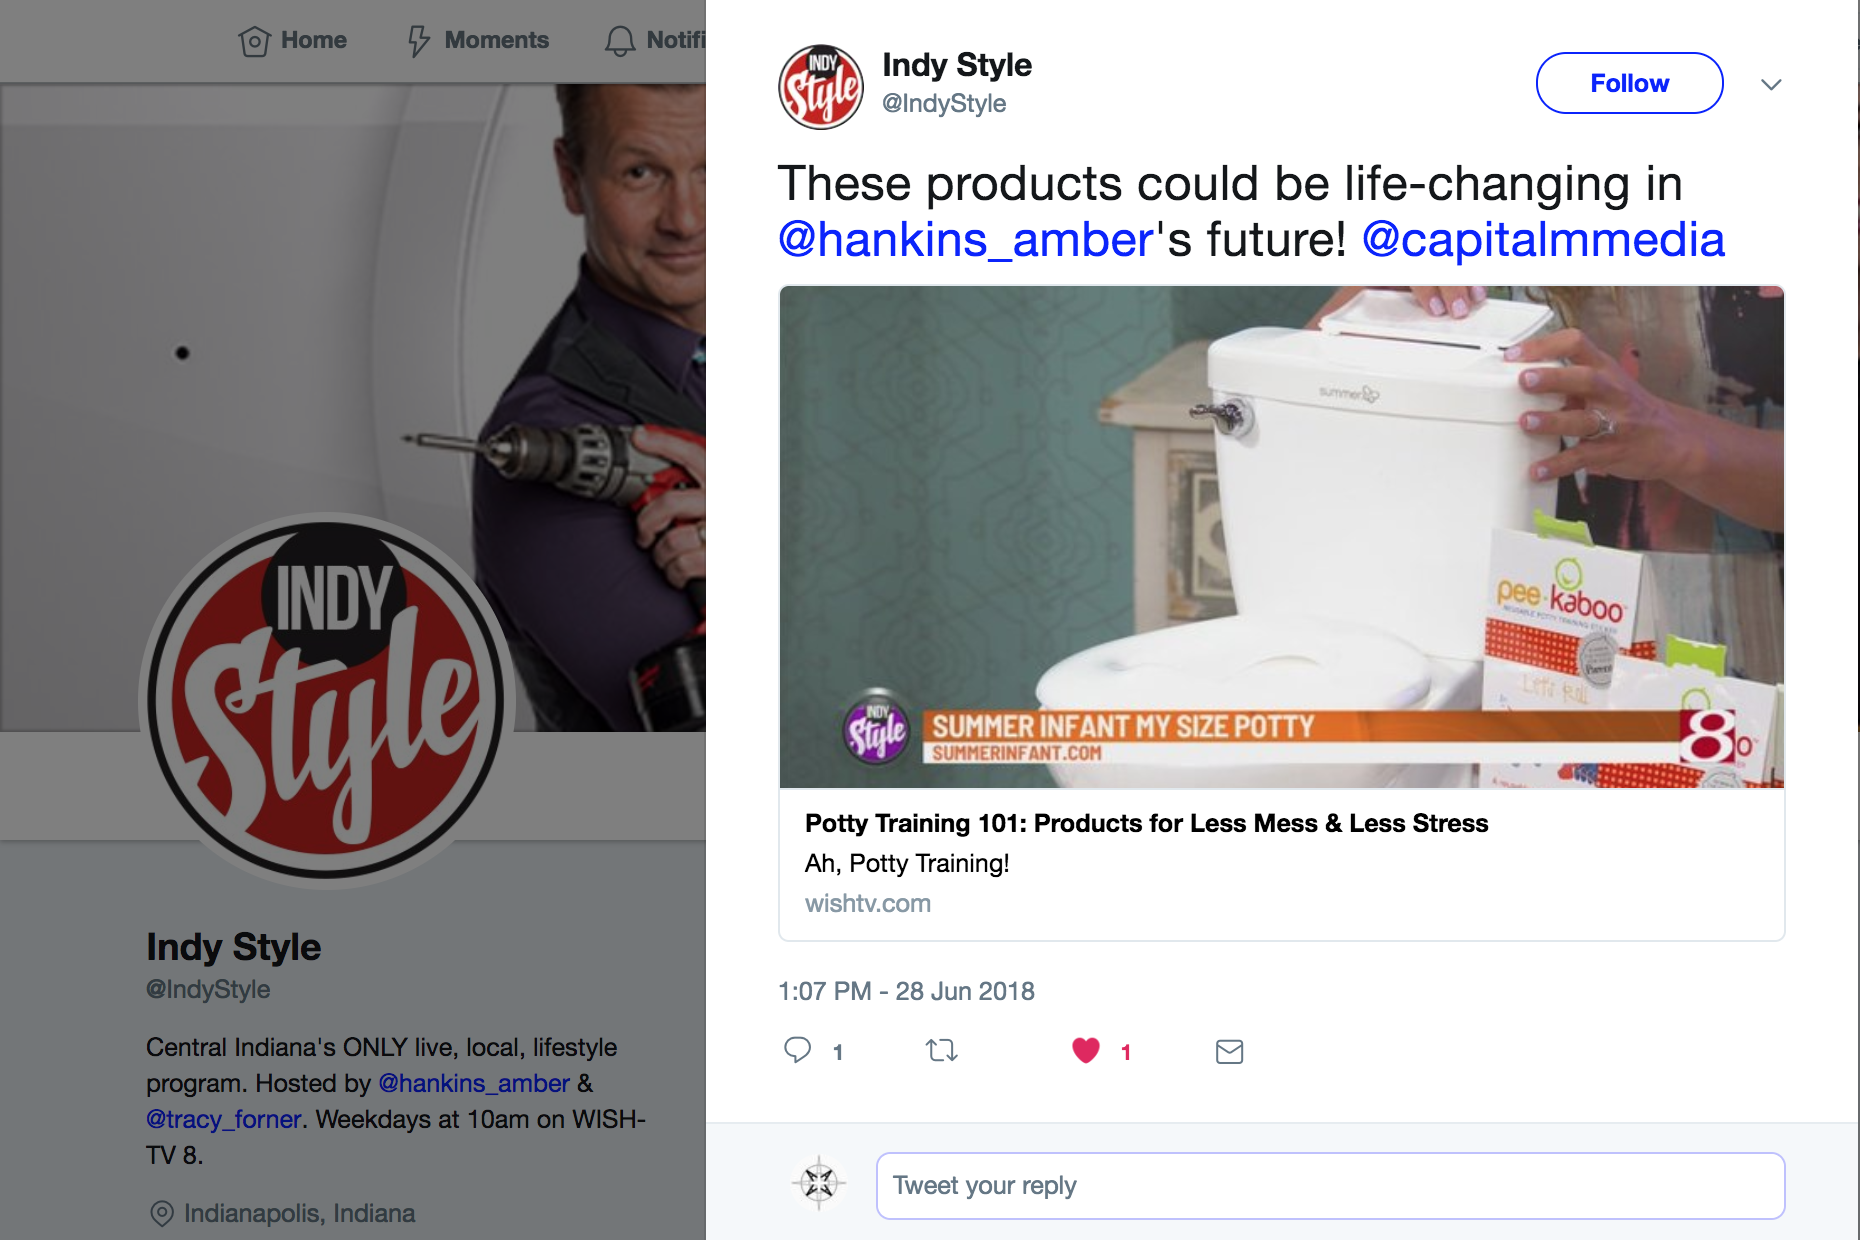 2018.06.28_WISH-TV (CBS 8) Twitter_Indy Style_Summer Infant My Size Potty_cropped 3x2.png